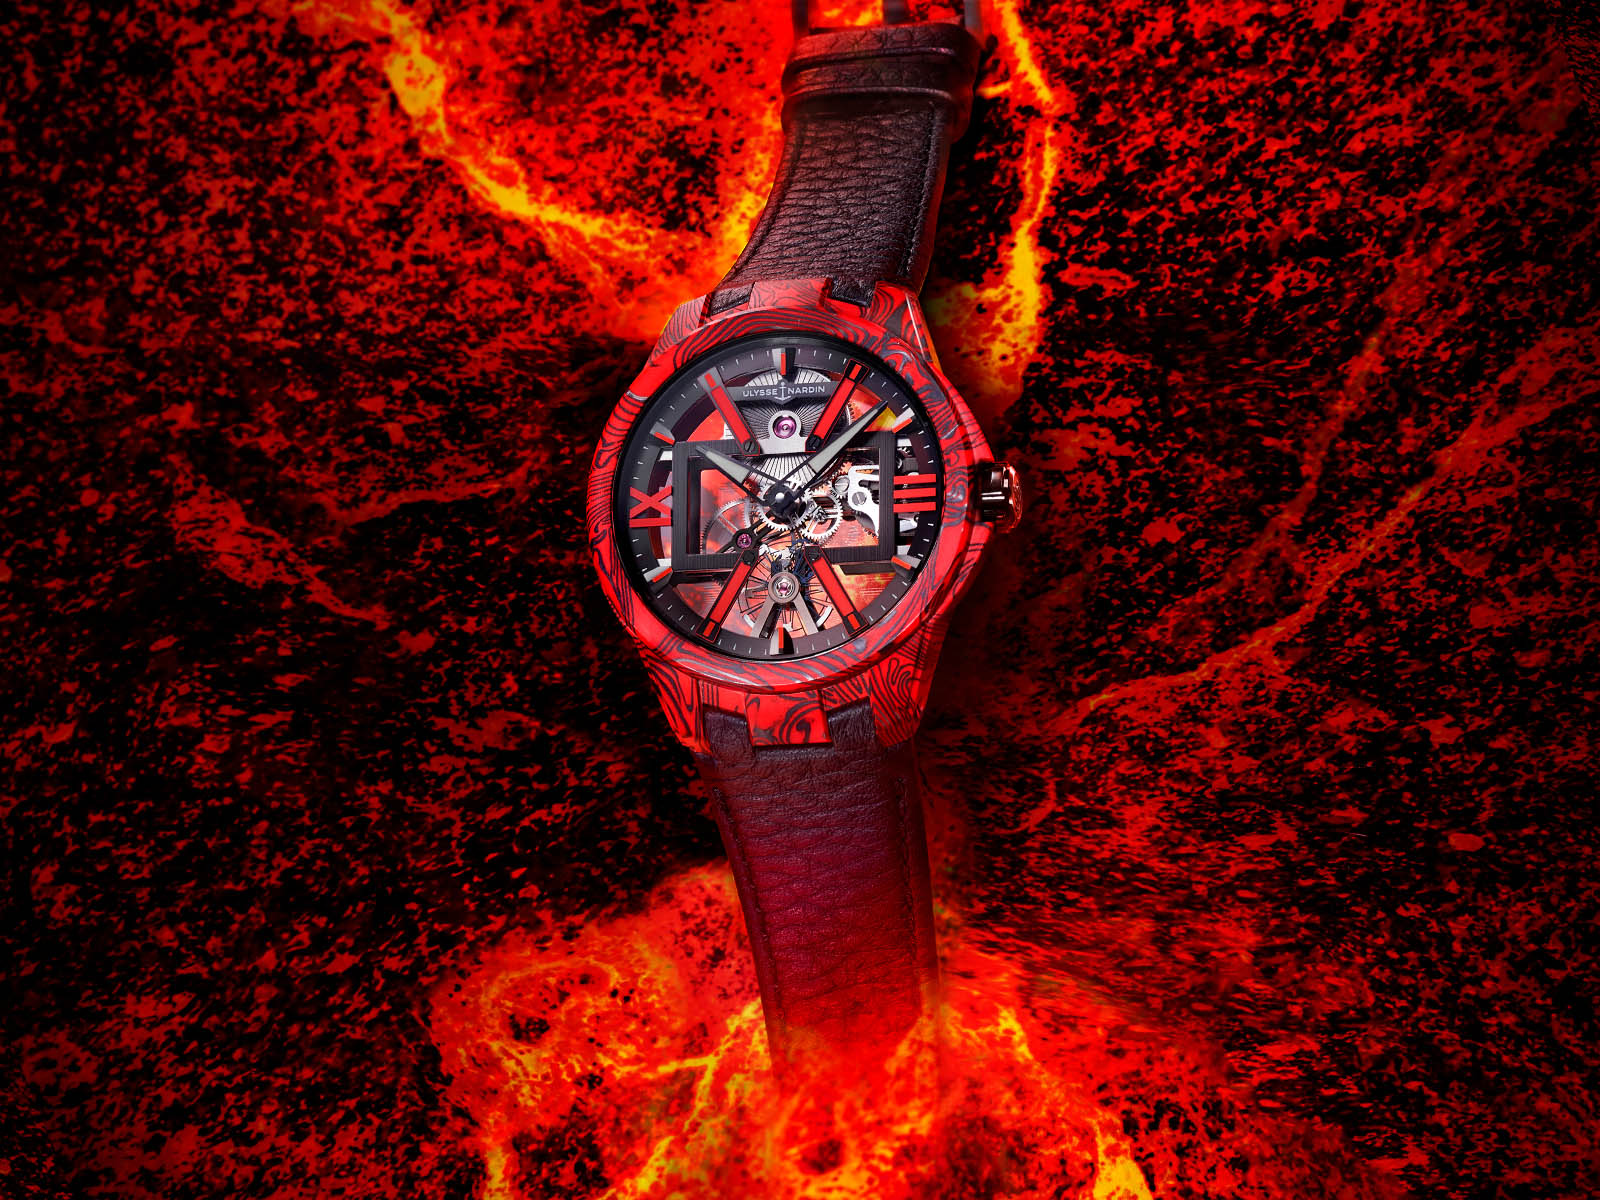 3713-260-magma-ulysse-nardin-executive-skeleton-x-magma-2.jpg